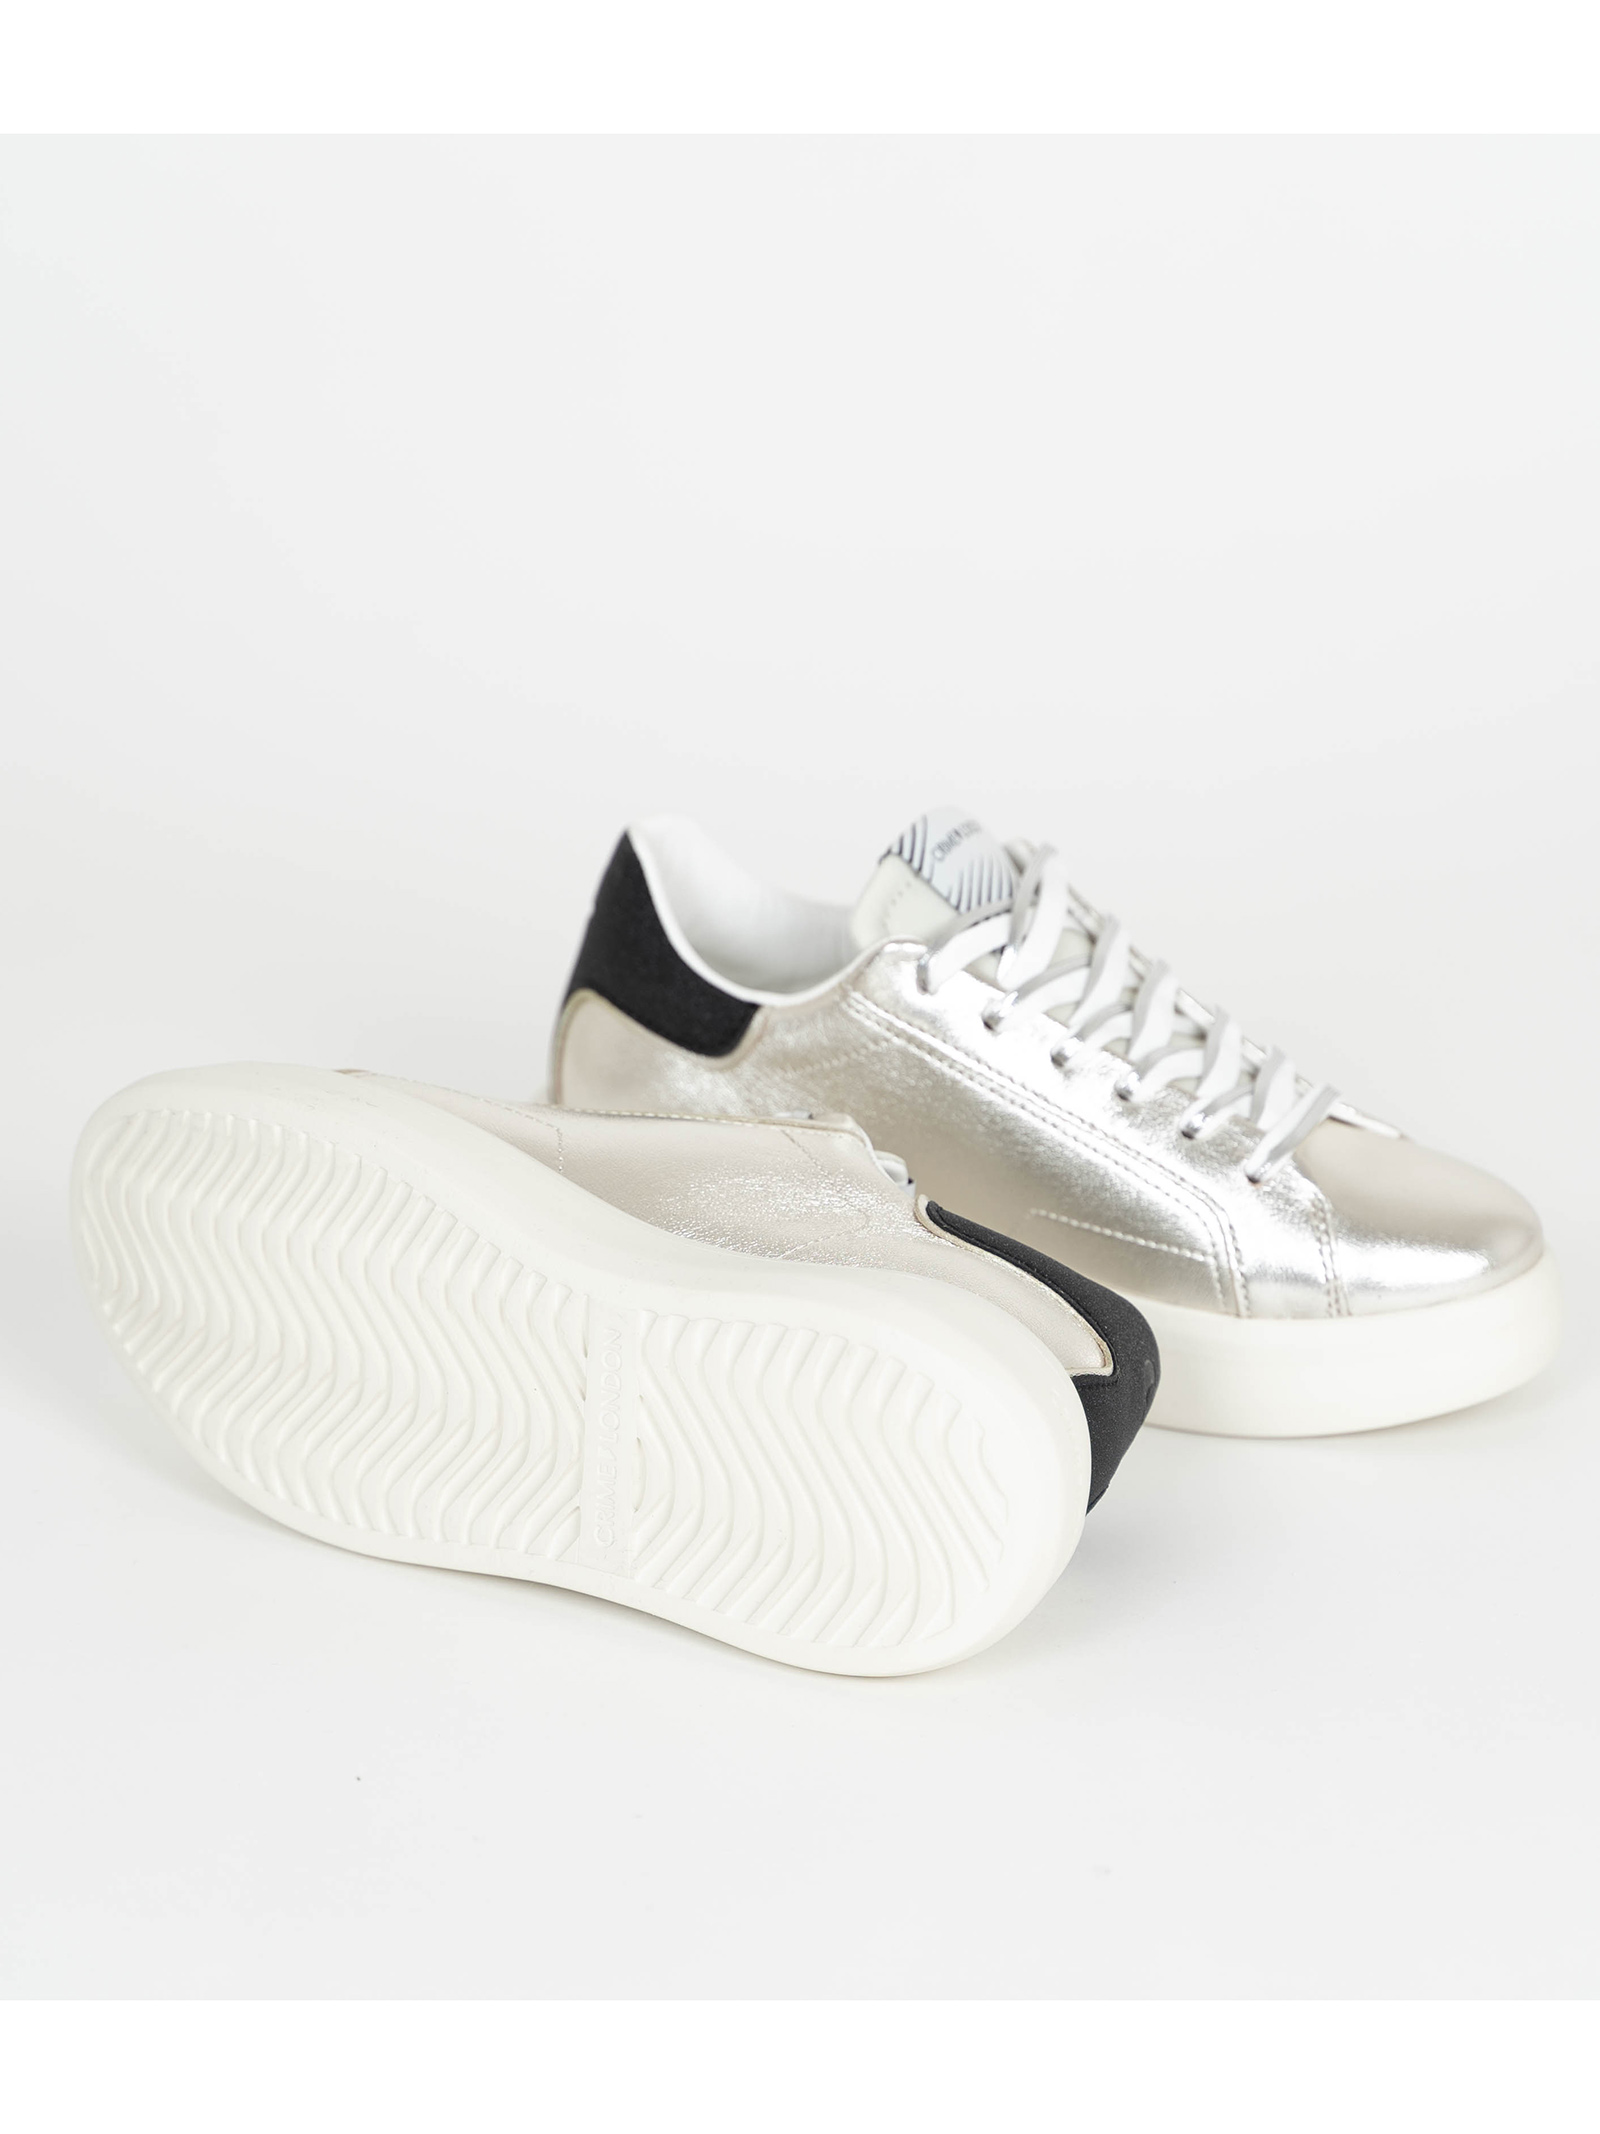 sneakers low top level up CRIME LONDON | Sneakers | 25304PP3B25